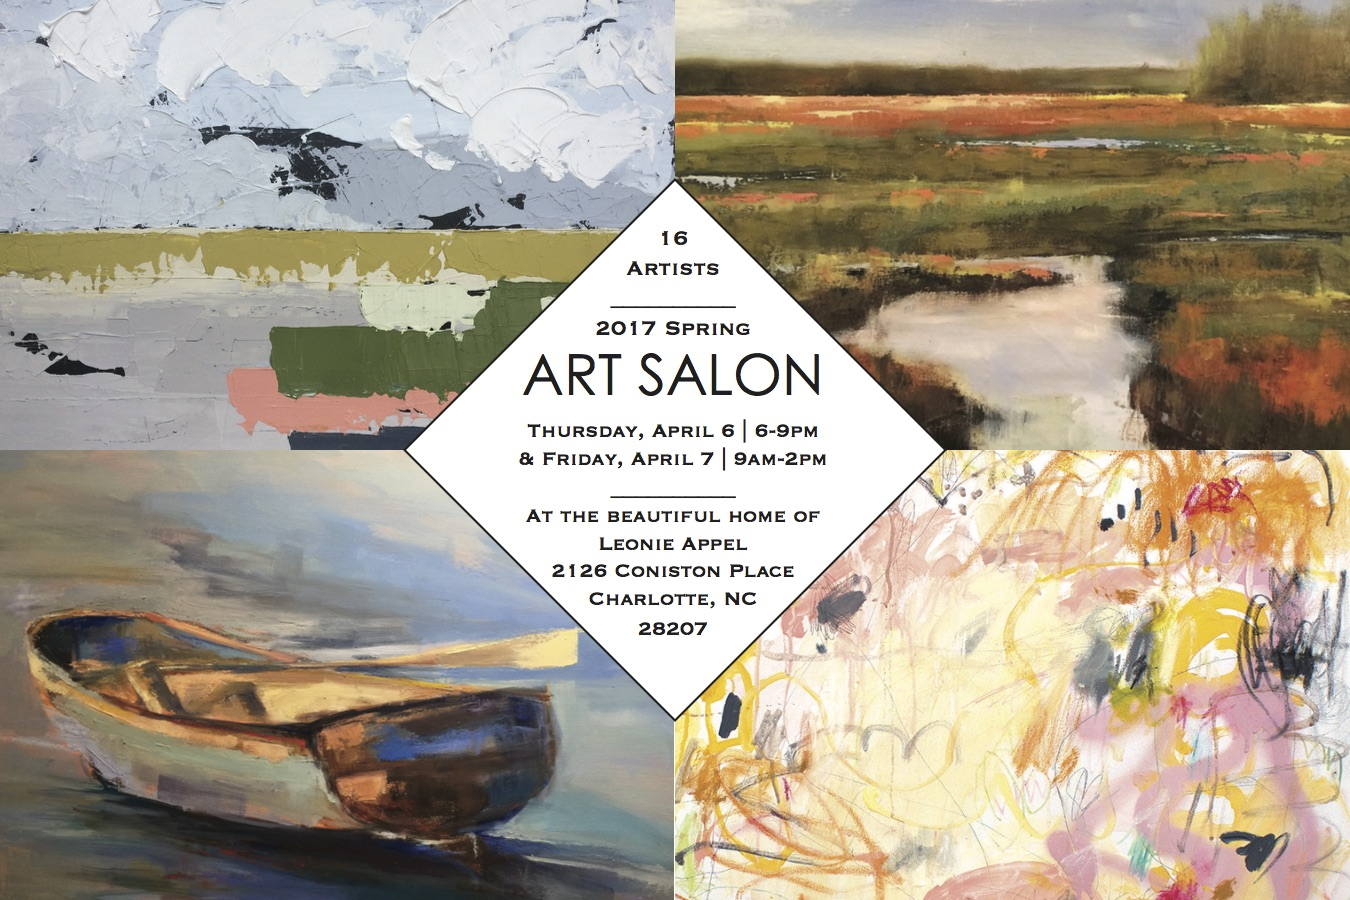 Art Salon 2017 Spring invitation FRONT copy